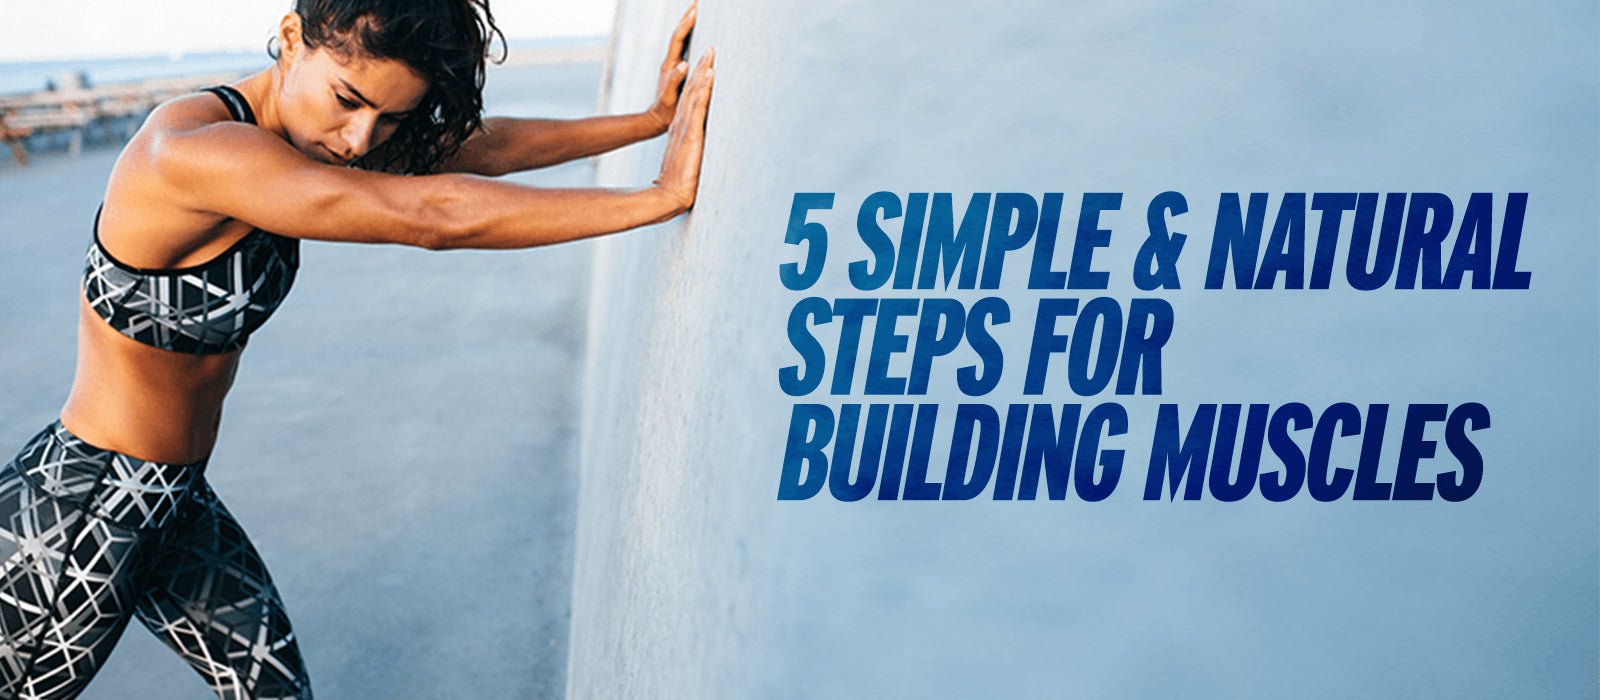 5 Simple & Natural Steps For Building Muscles